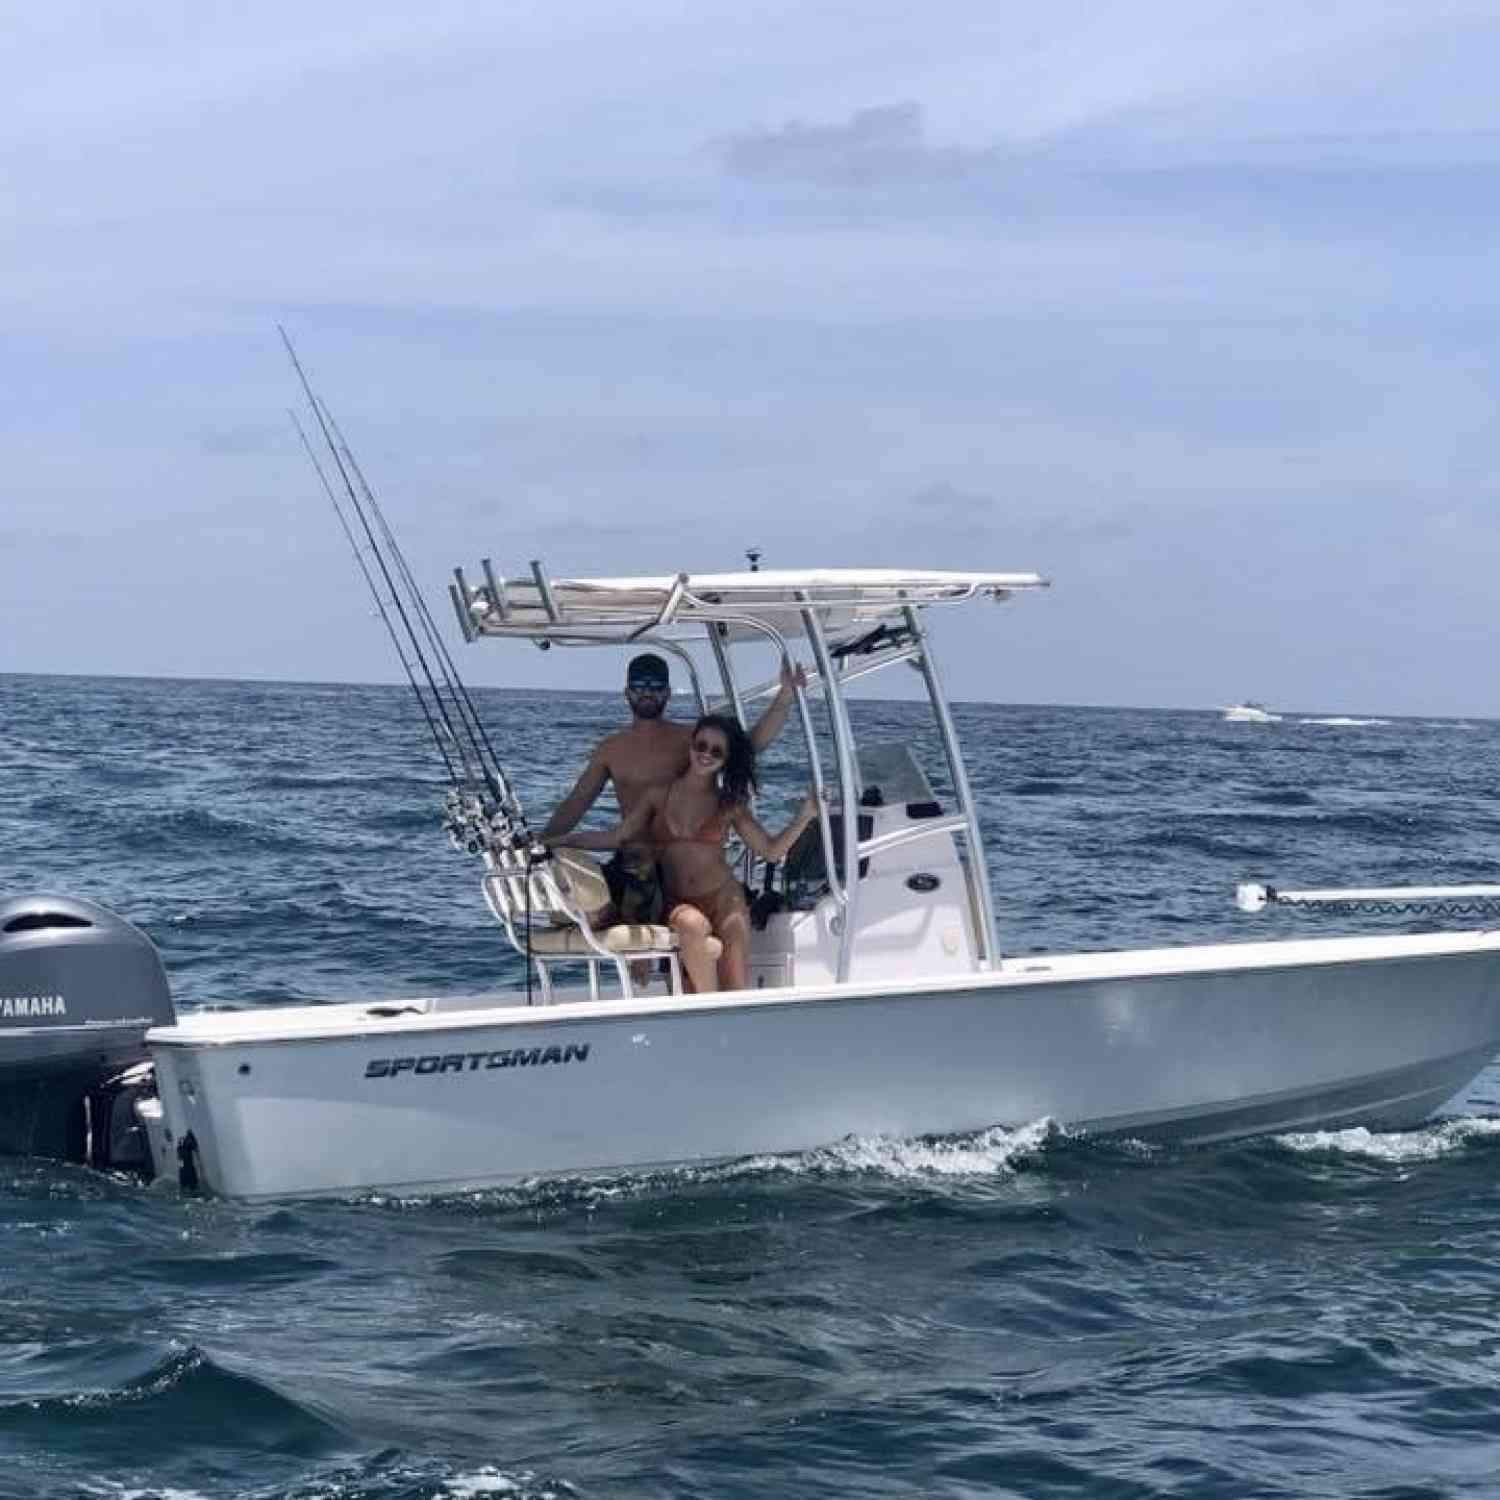 Title: Freedom - On board their Sportsman Masters 227 Bay Boat - Location: Ft. Lauderdale, Fl. Participating in the Photo Contest #SportsmanFebruary2021